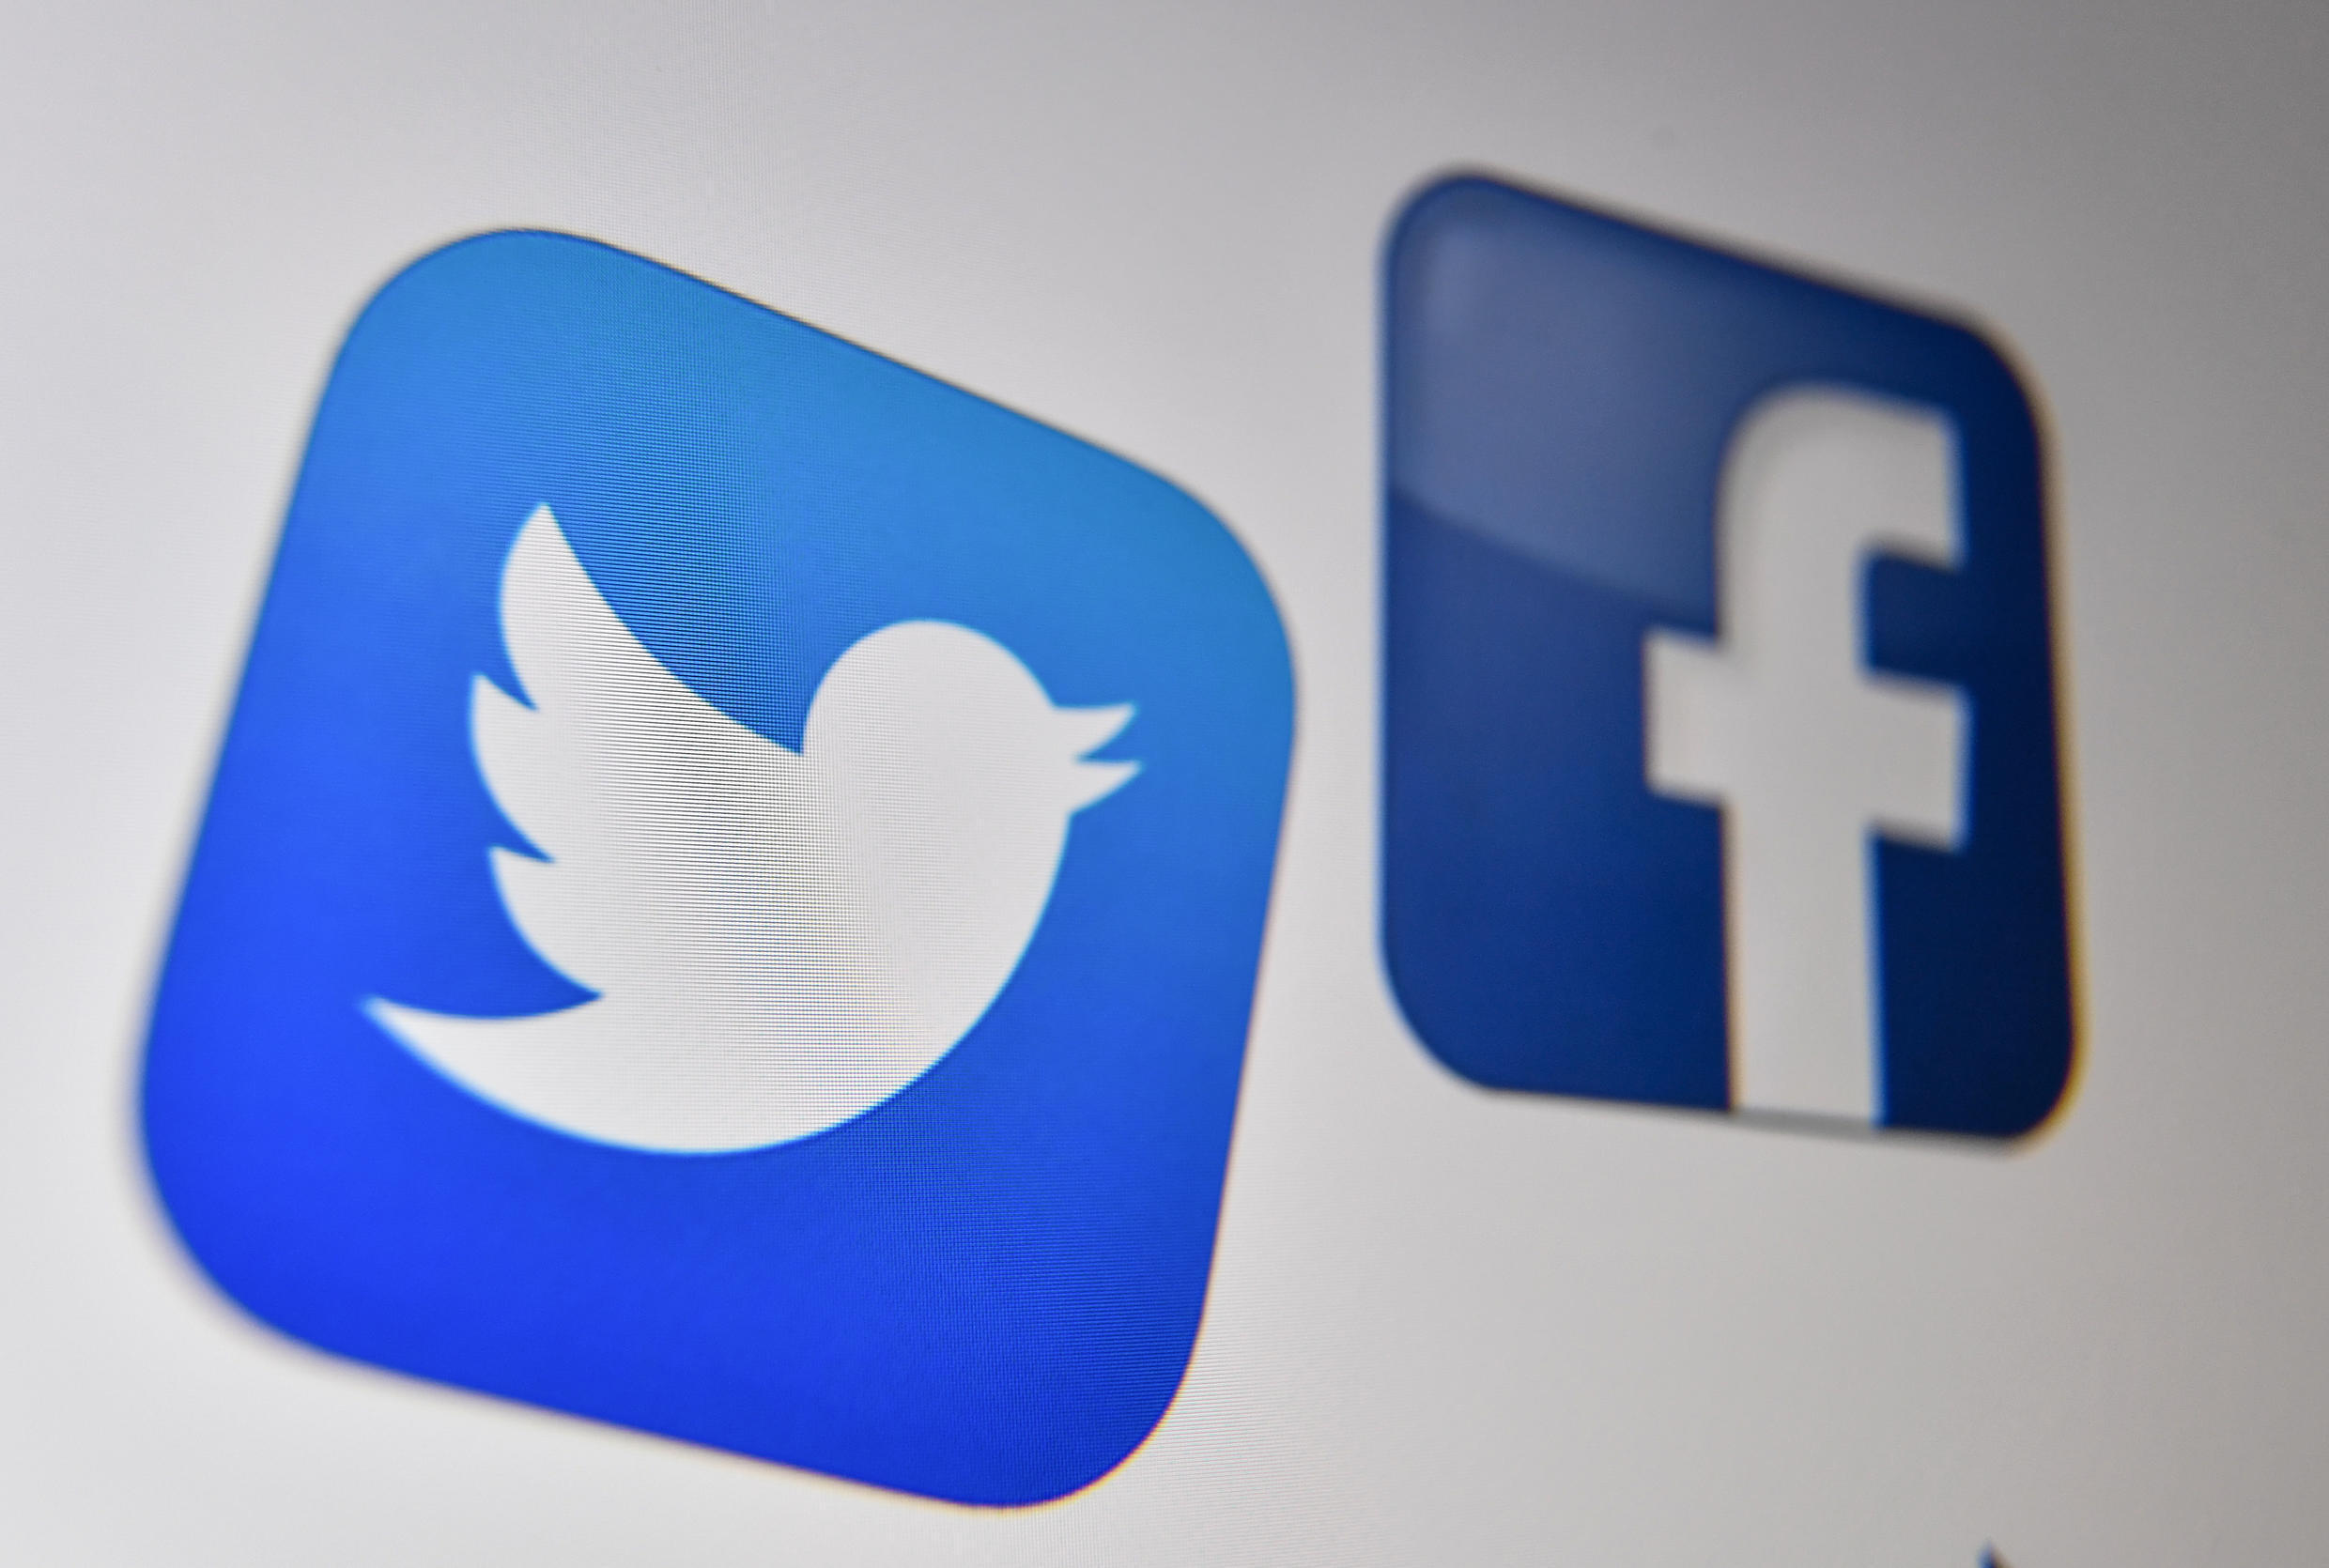 Twitter and Facebook are among the tech giants to have committed to the code of conduct